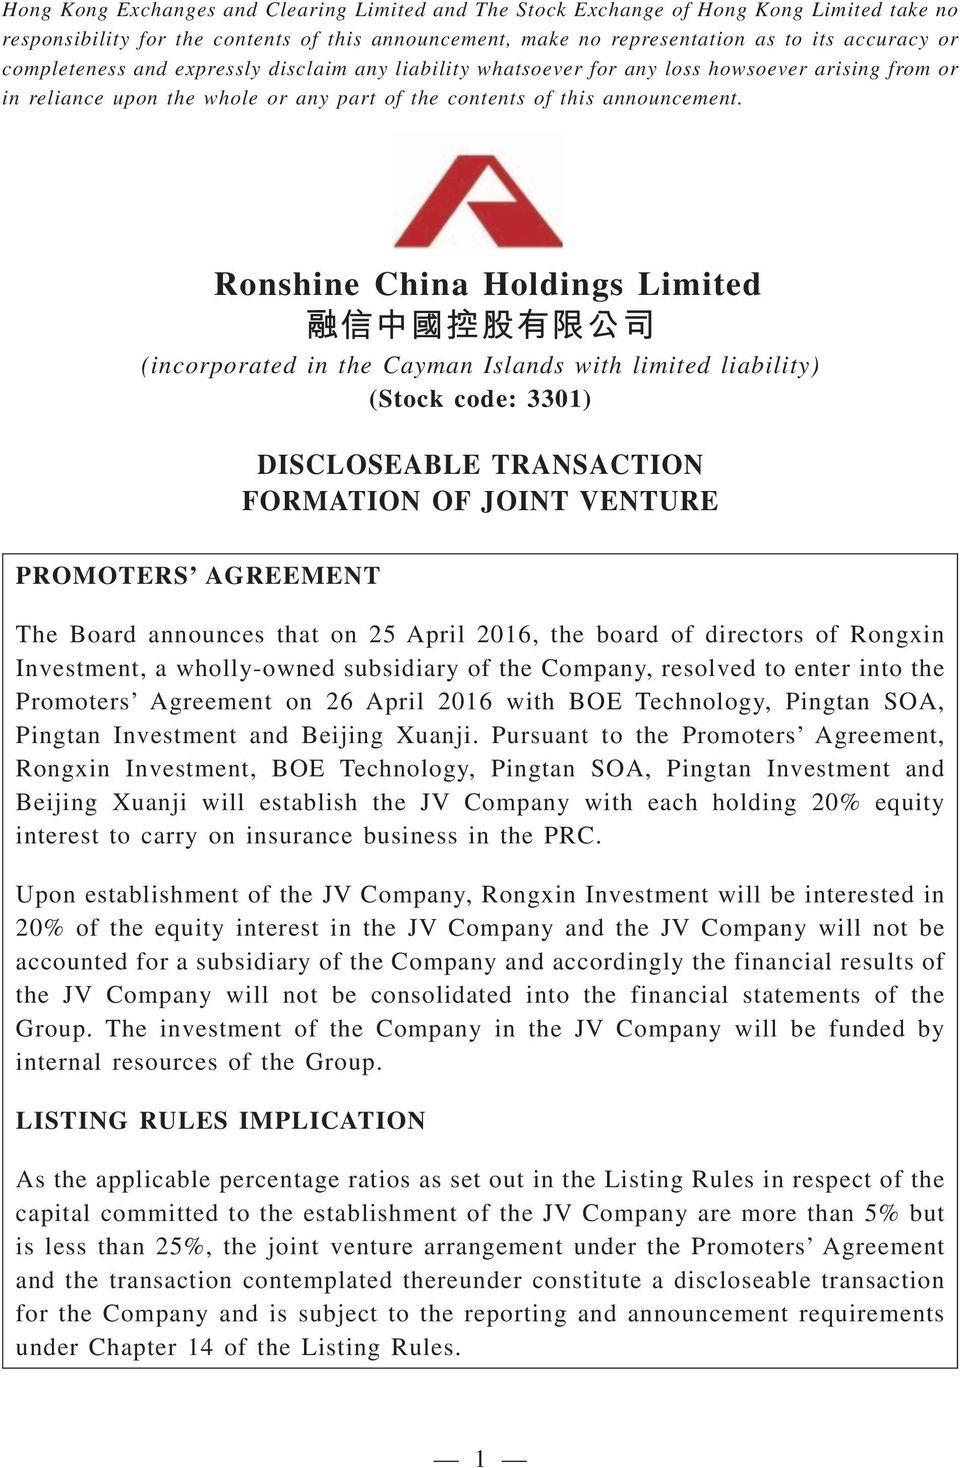 Ronshine China Holdings Limited (incorporated in the Cayman Islands with limited liability) (Stock code: 3301) DISCLOSEABLE TRANSACTION FORMATION OF JOINT VENTURE PROMOTERS AGREEMENT The Board